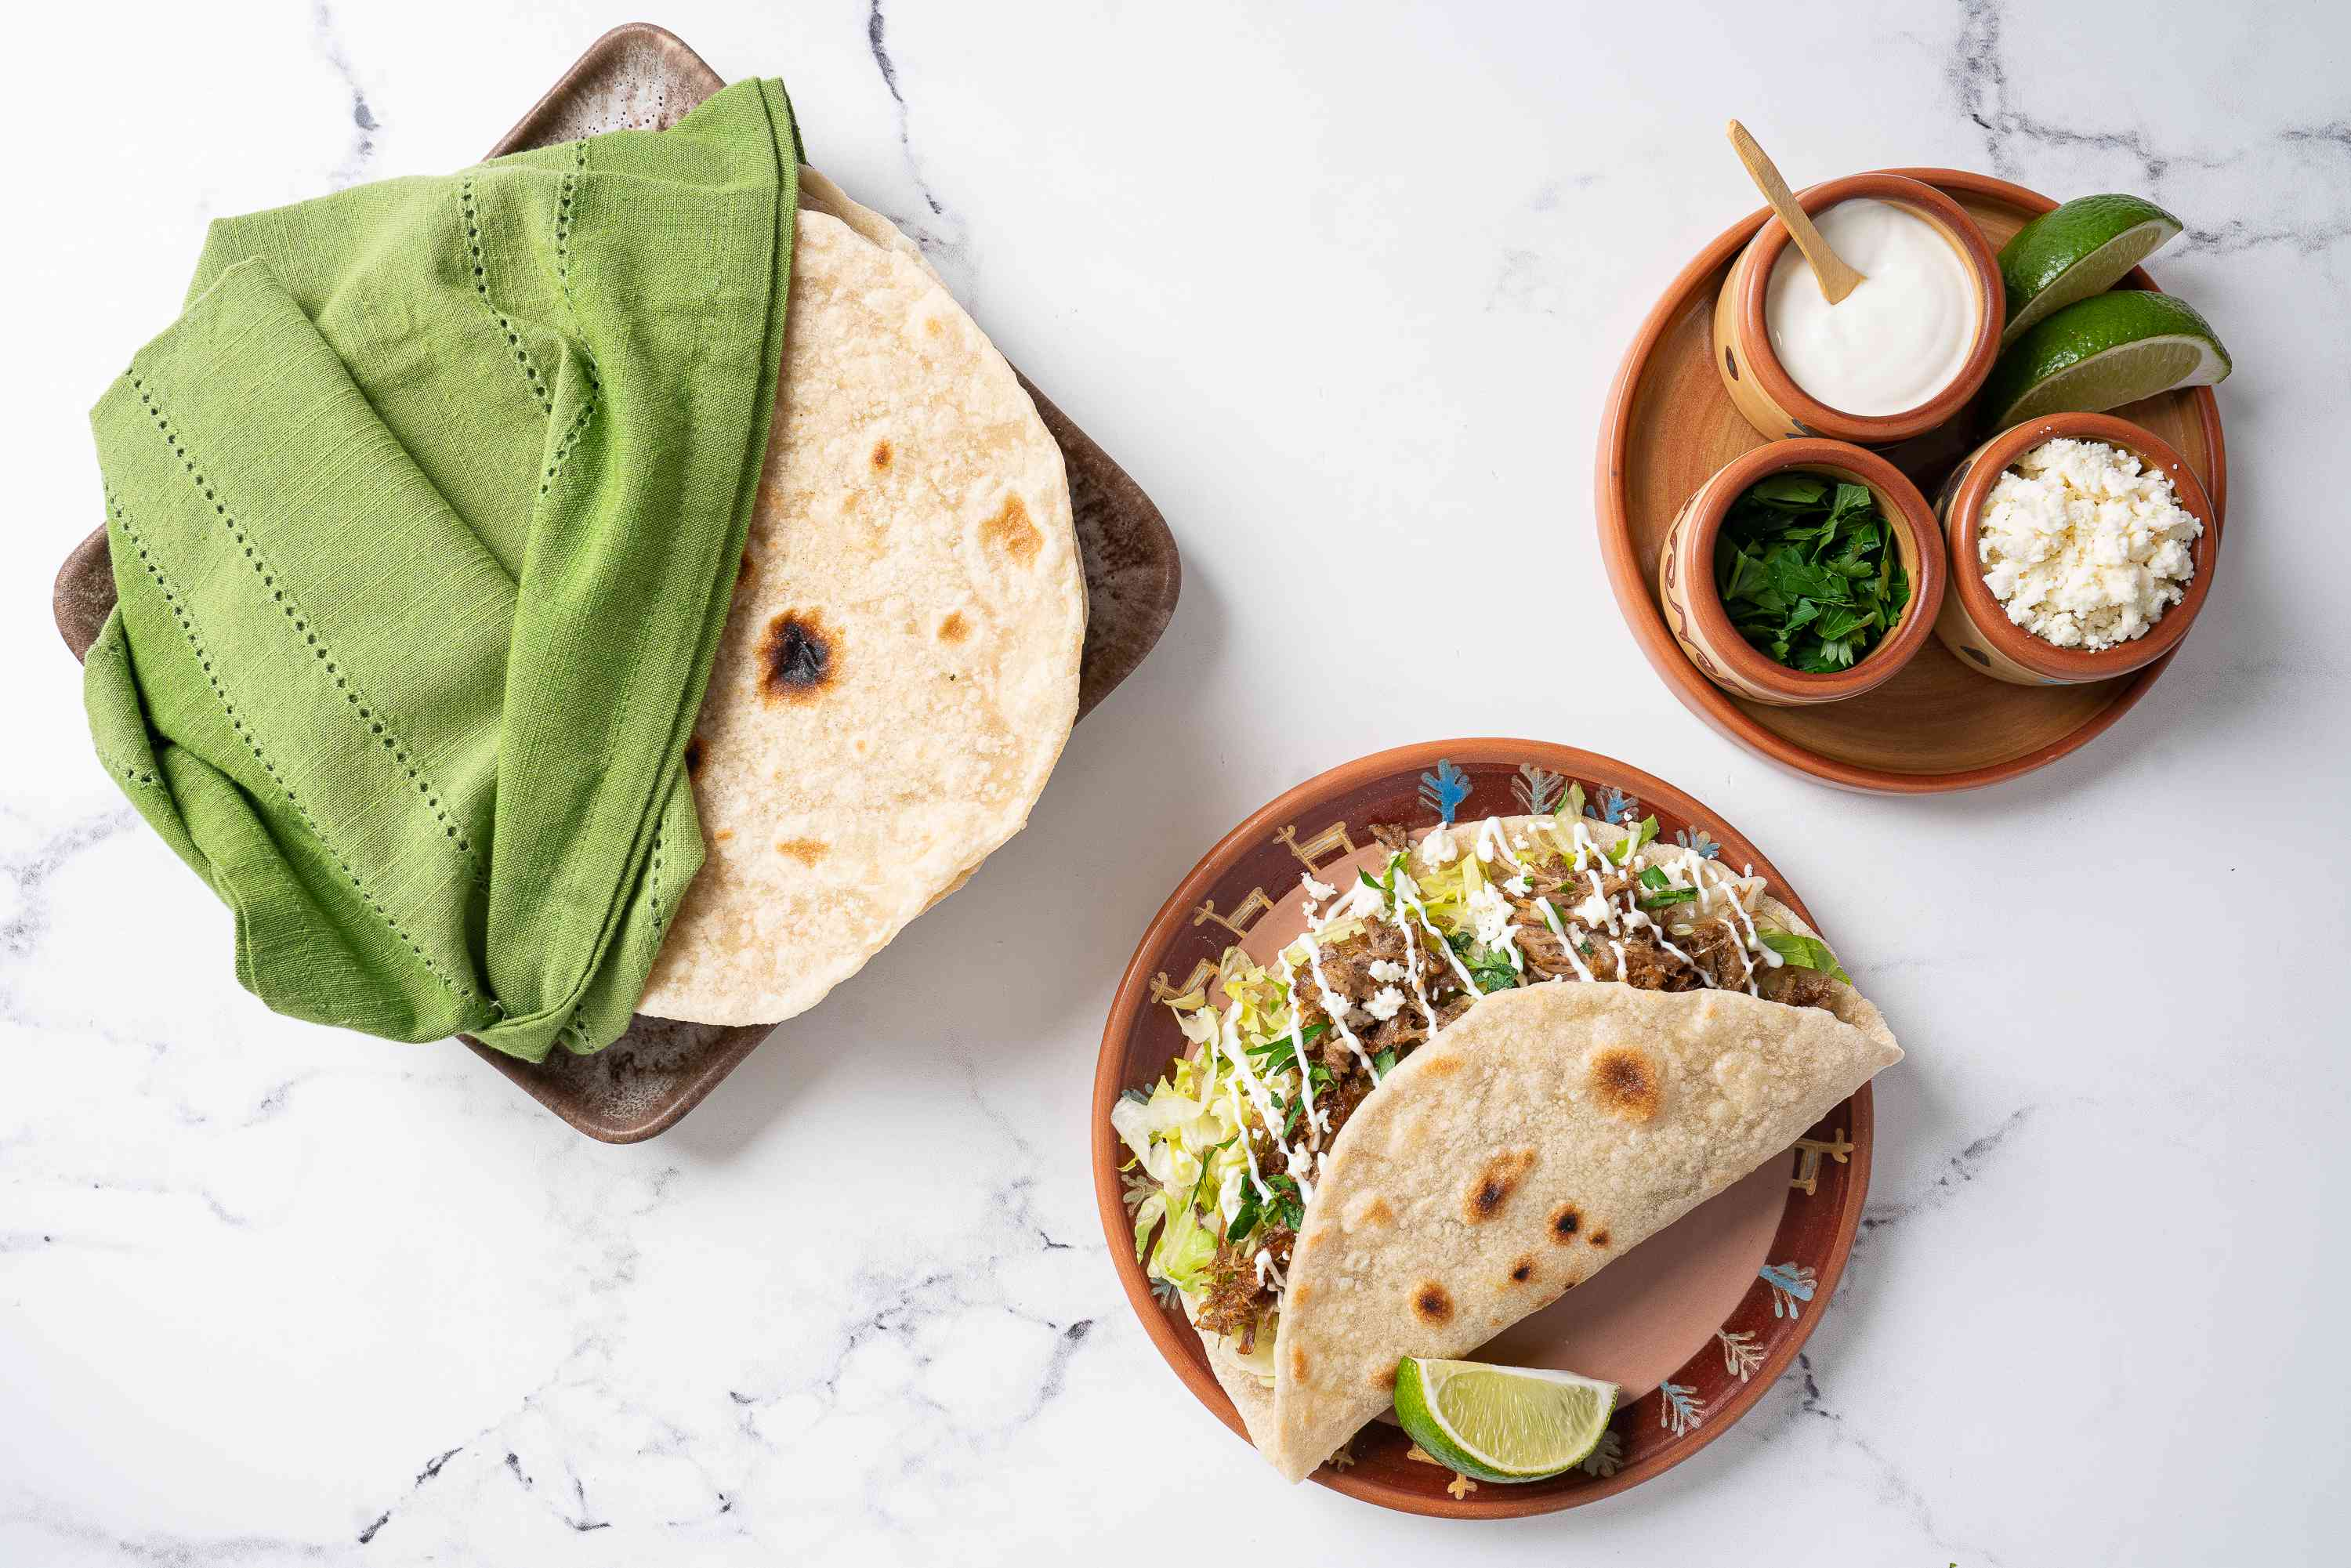 Homemade Flour Tortillas with tacos and fixings